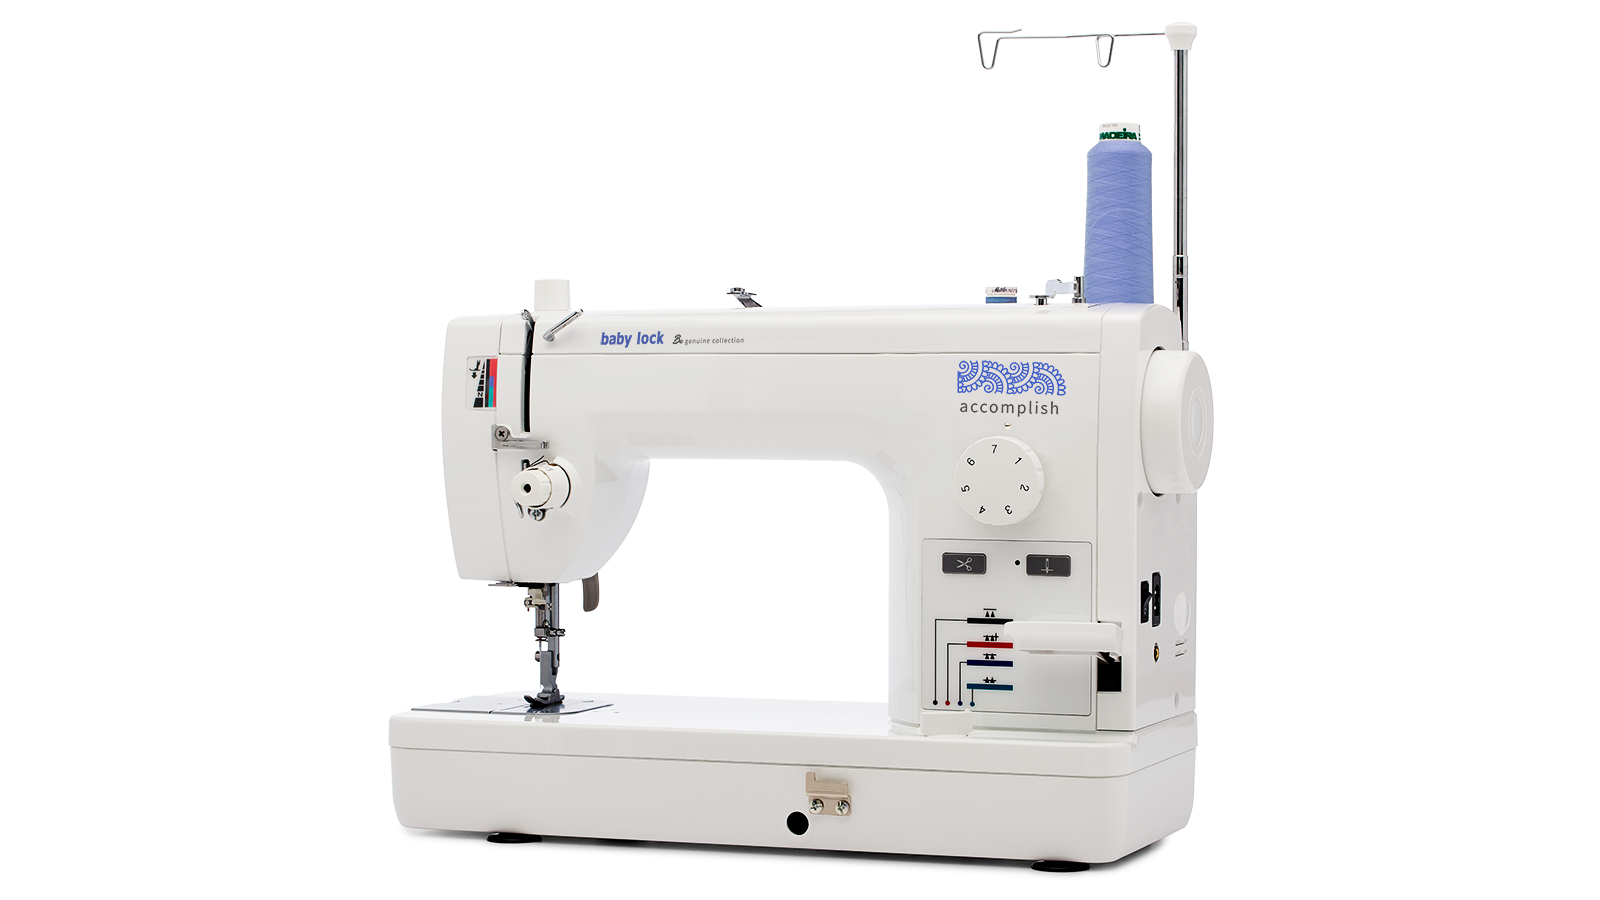 Baby Lock Accomplish Sewing Machine